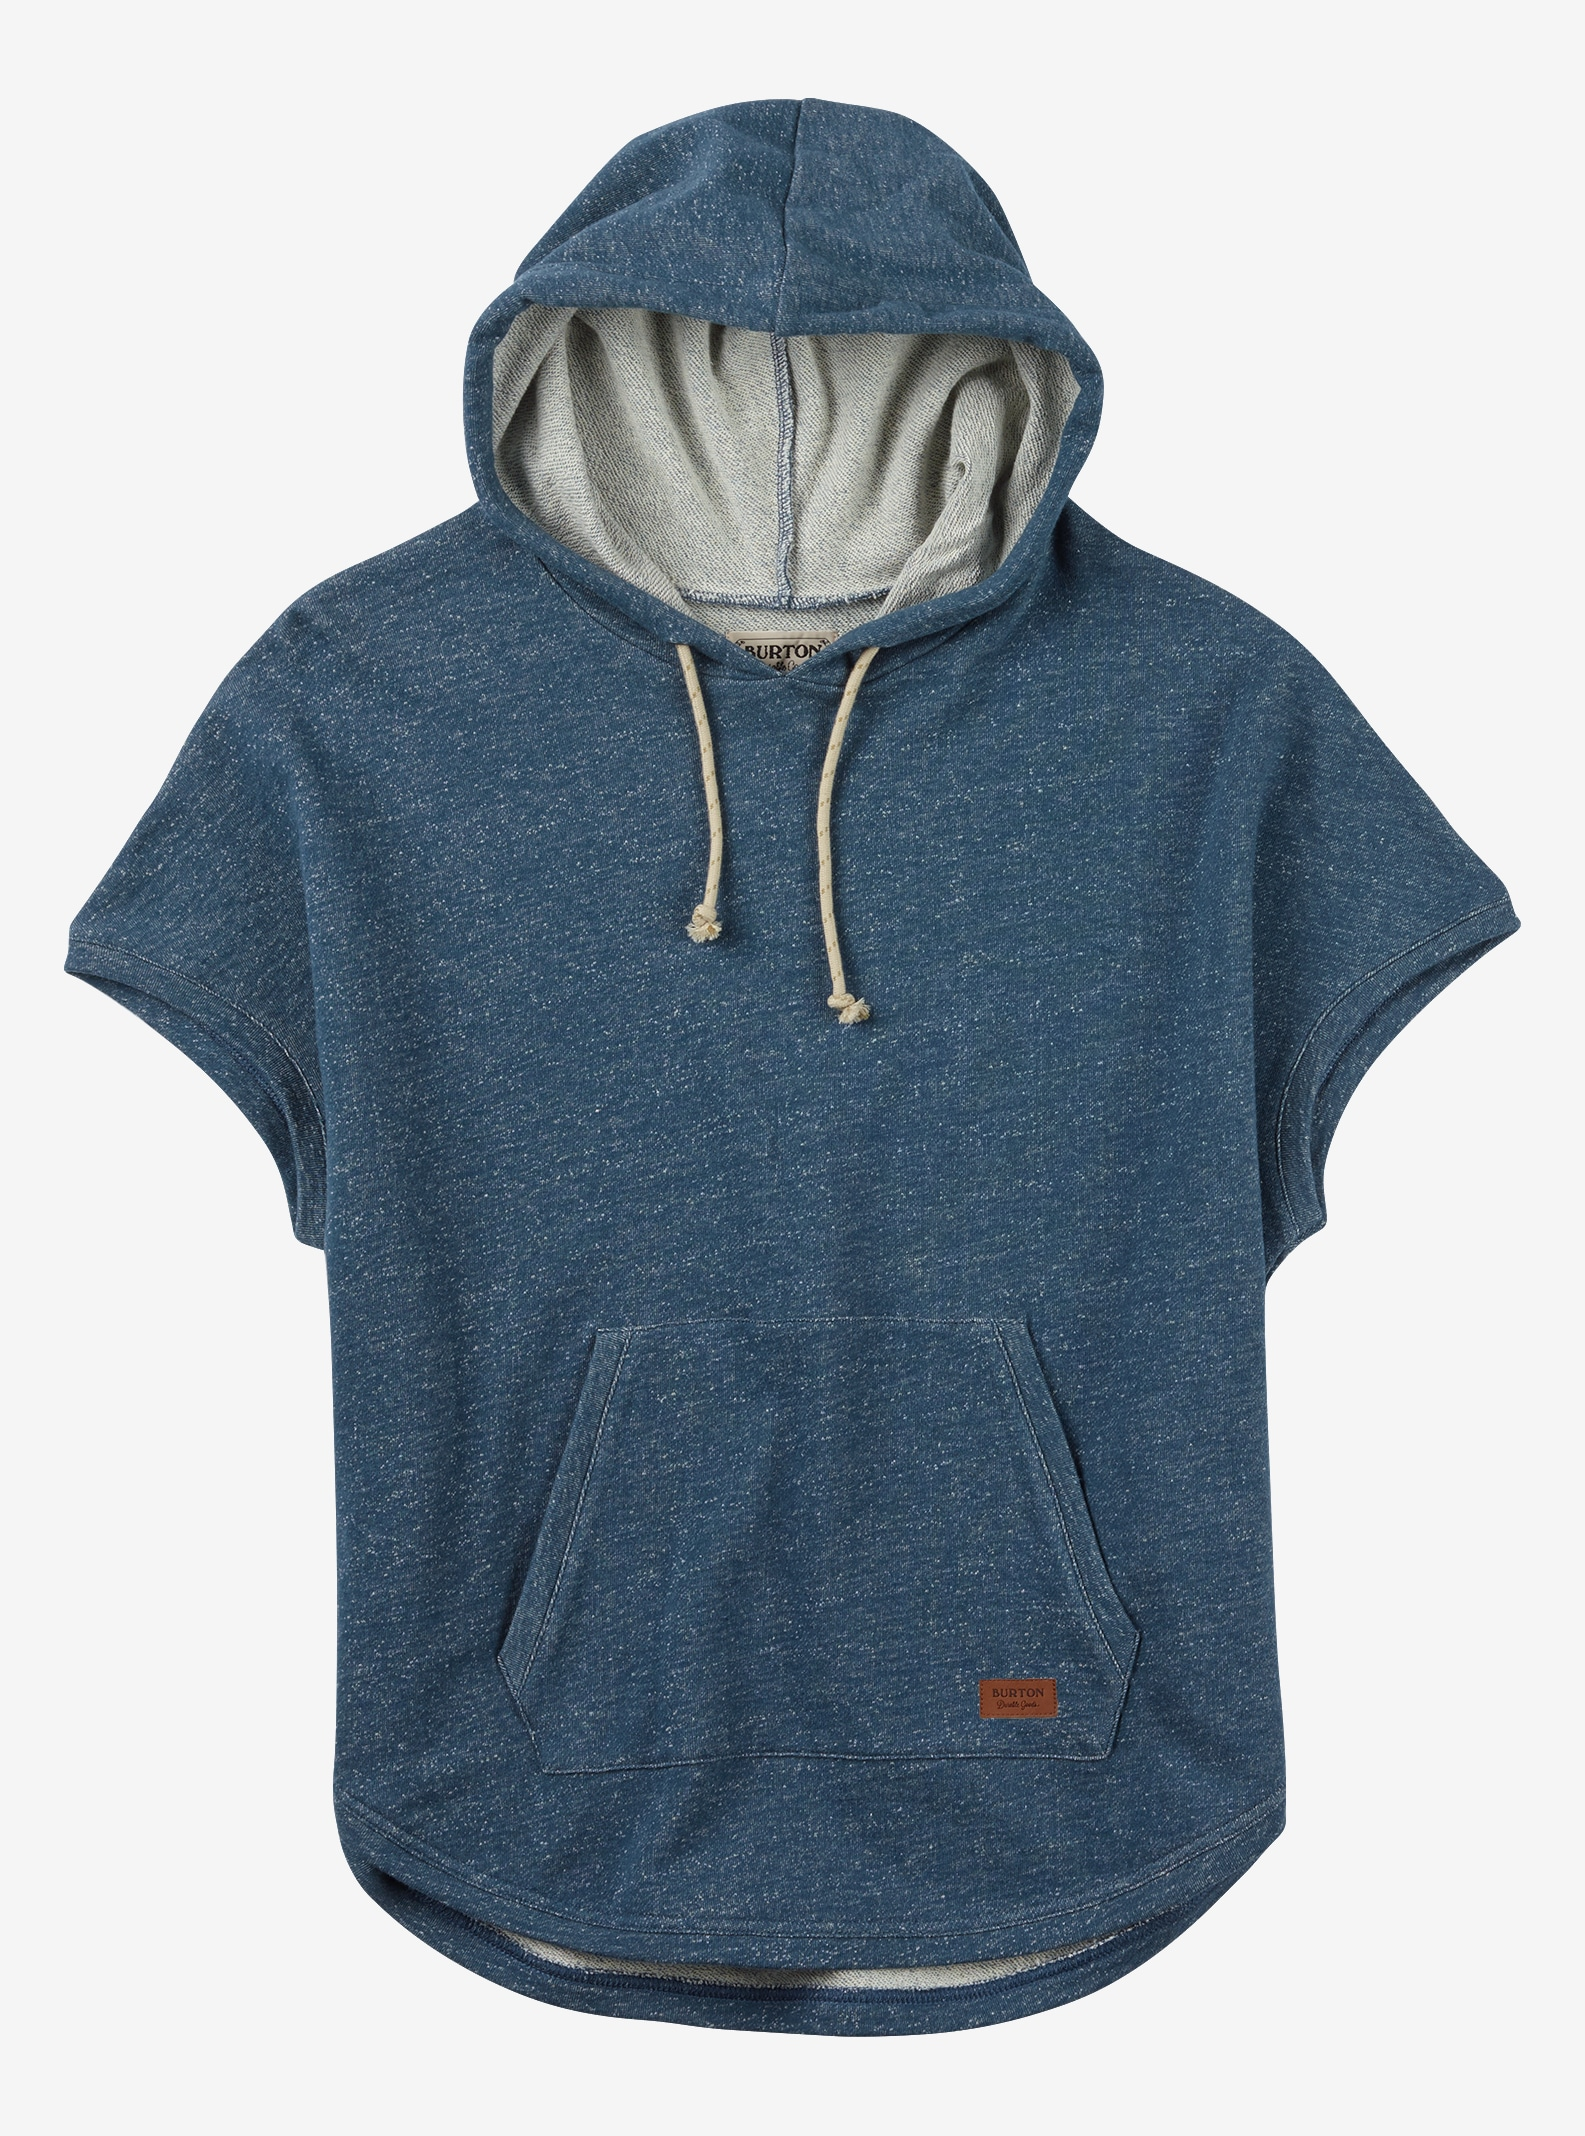 Burton Nora Poncho Fleece shown in Indigo Heather